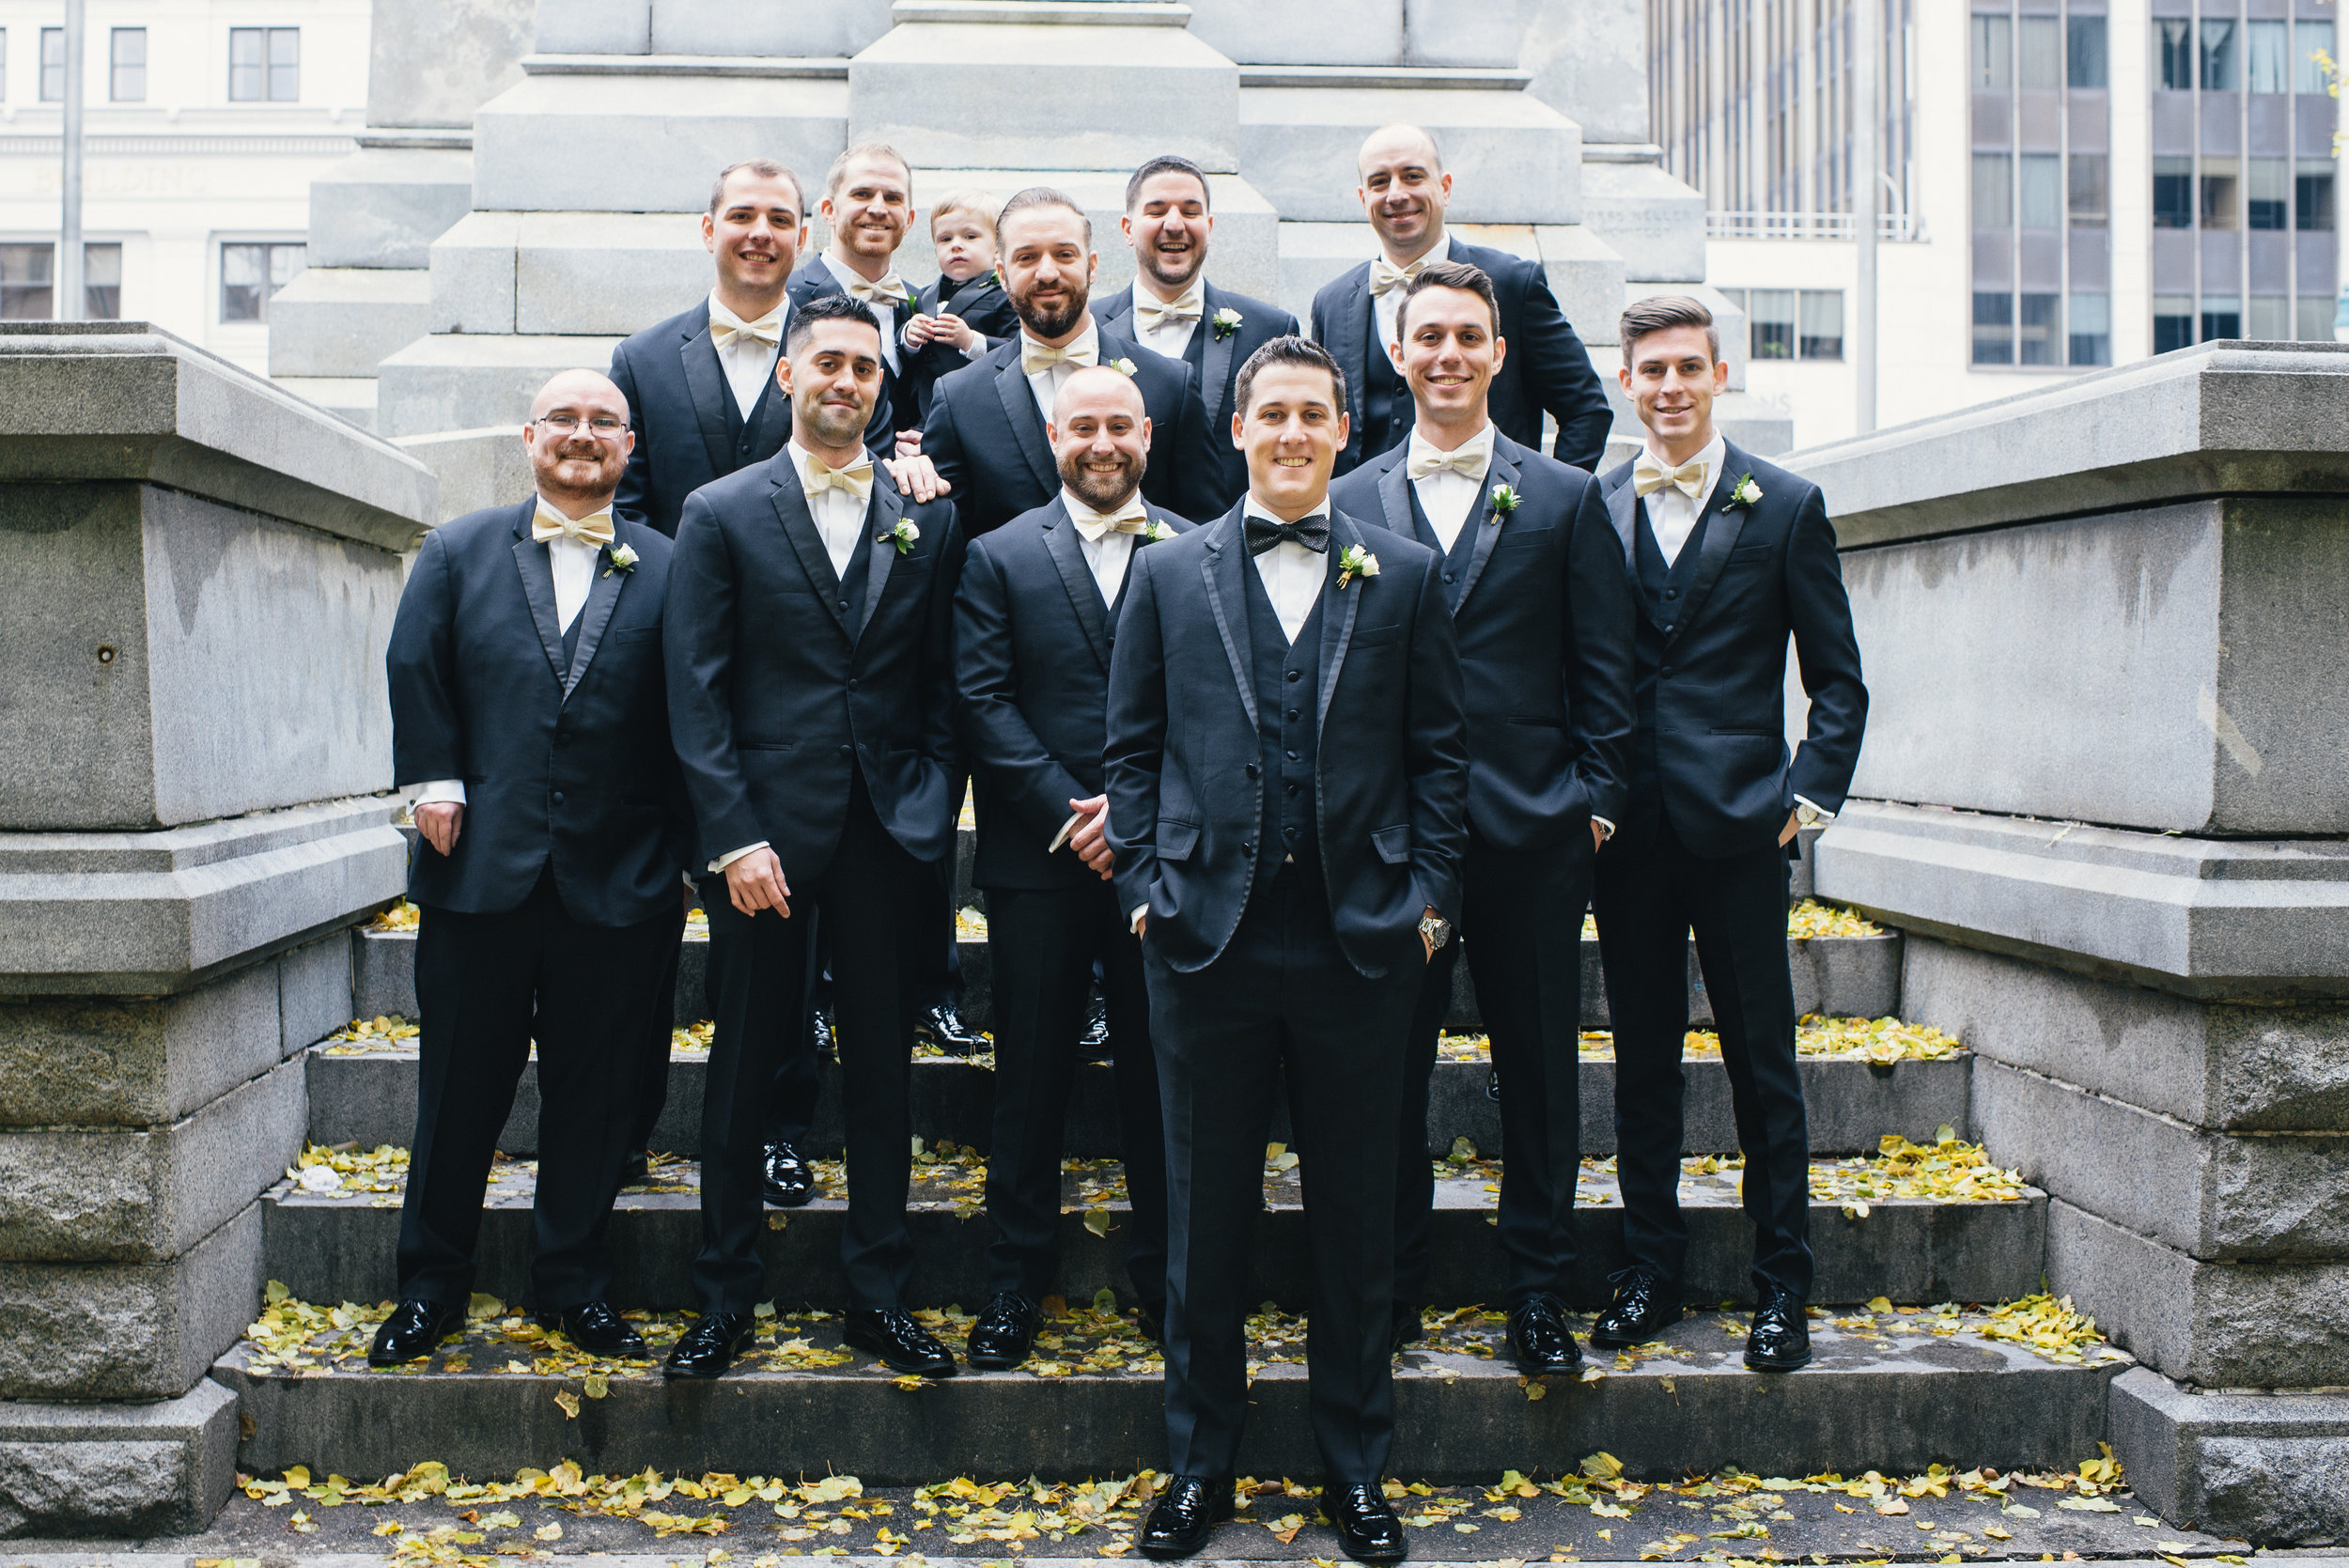 Groom and groomsmen pose for wedding photos in black tuxedos for black, white, and gold wedding in Buffalo, NY planned by Exhale Events. Find more wedding inspiration at exhale-events.com!